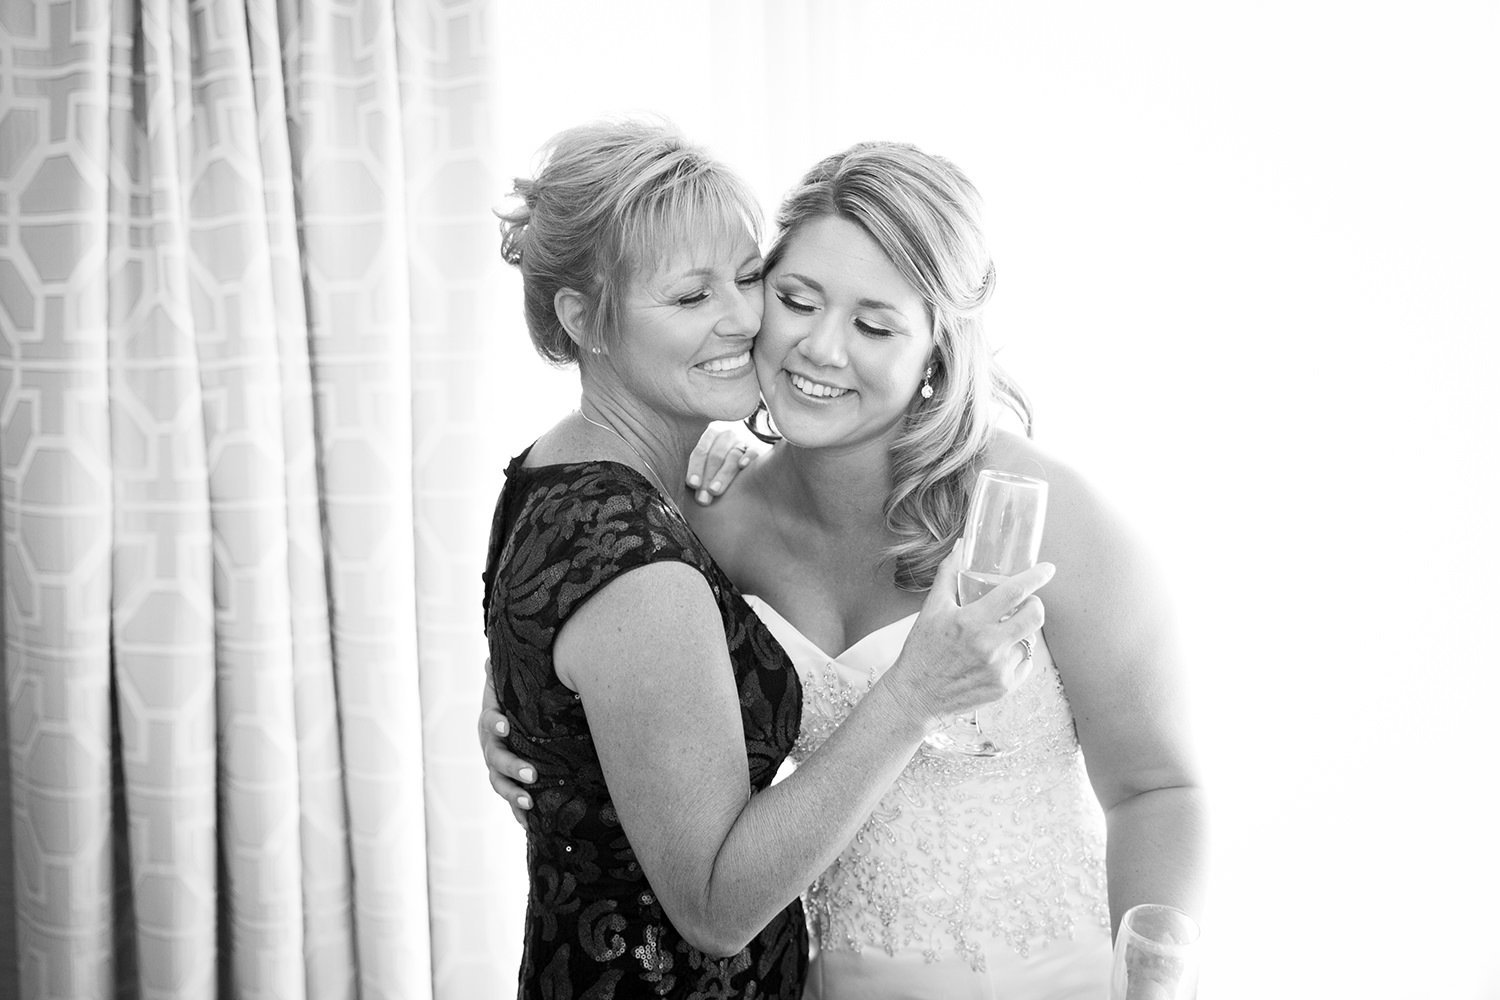 mom and bride special moment